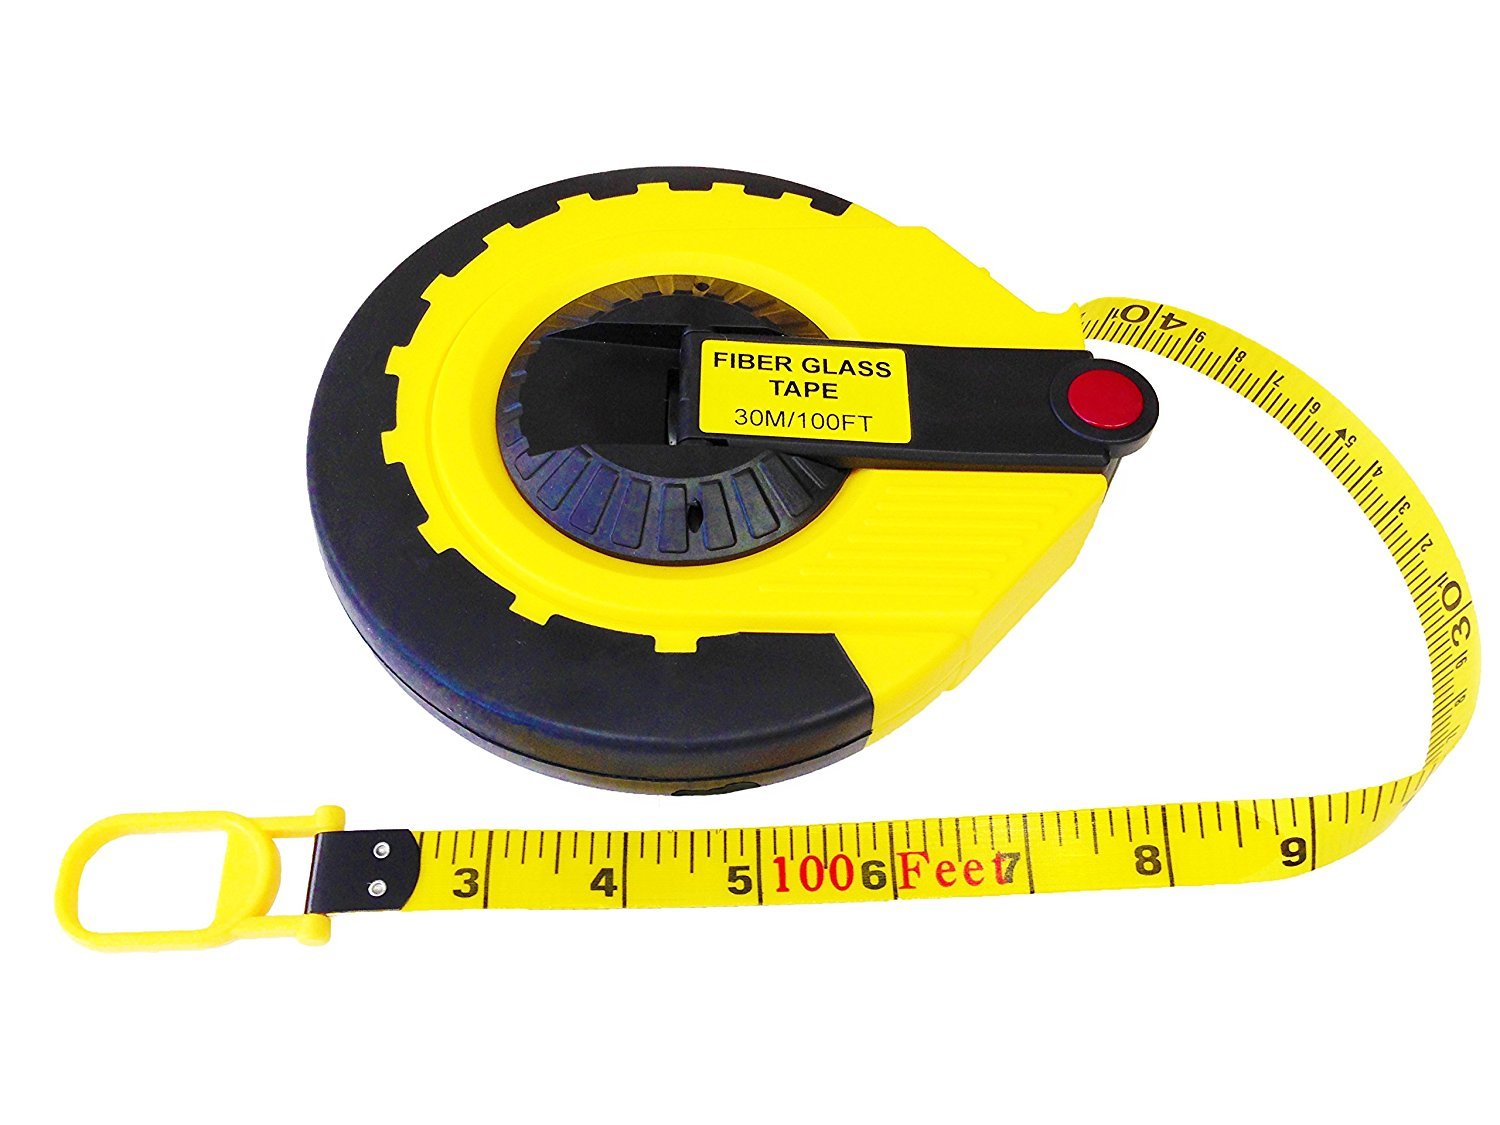 How To Read A Tape Measure Efficiently And Correctly